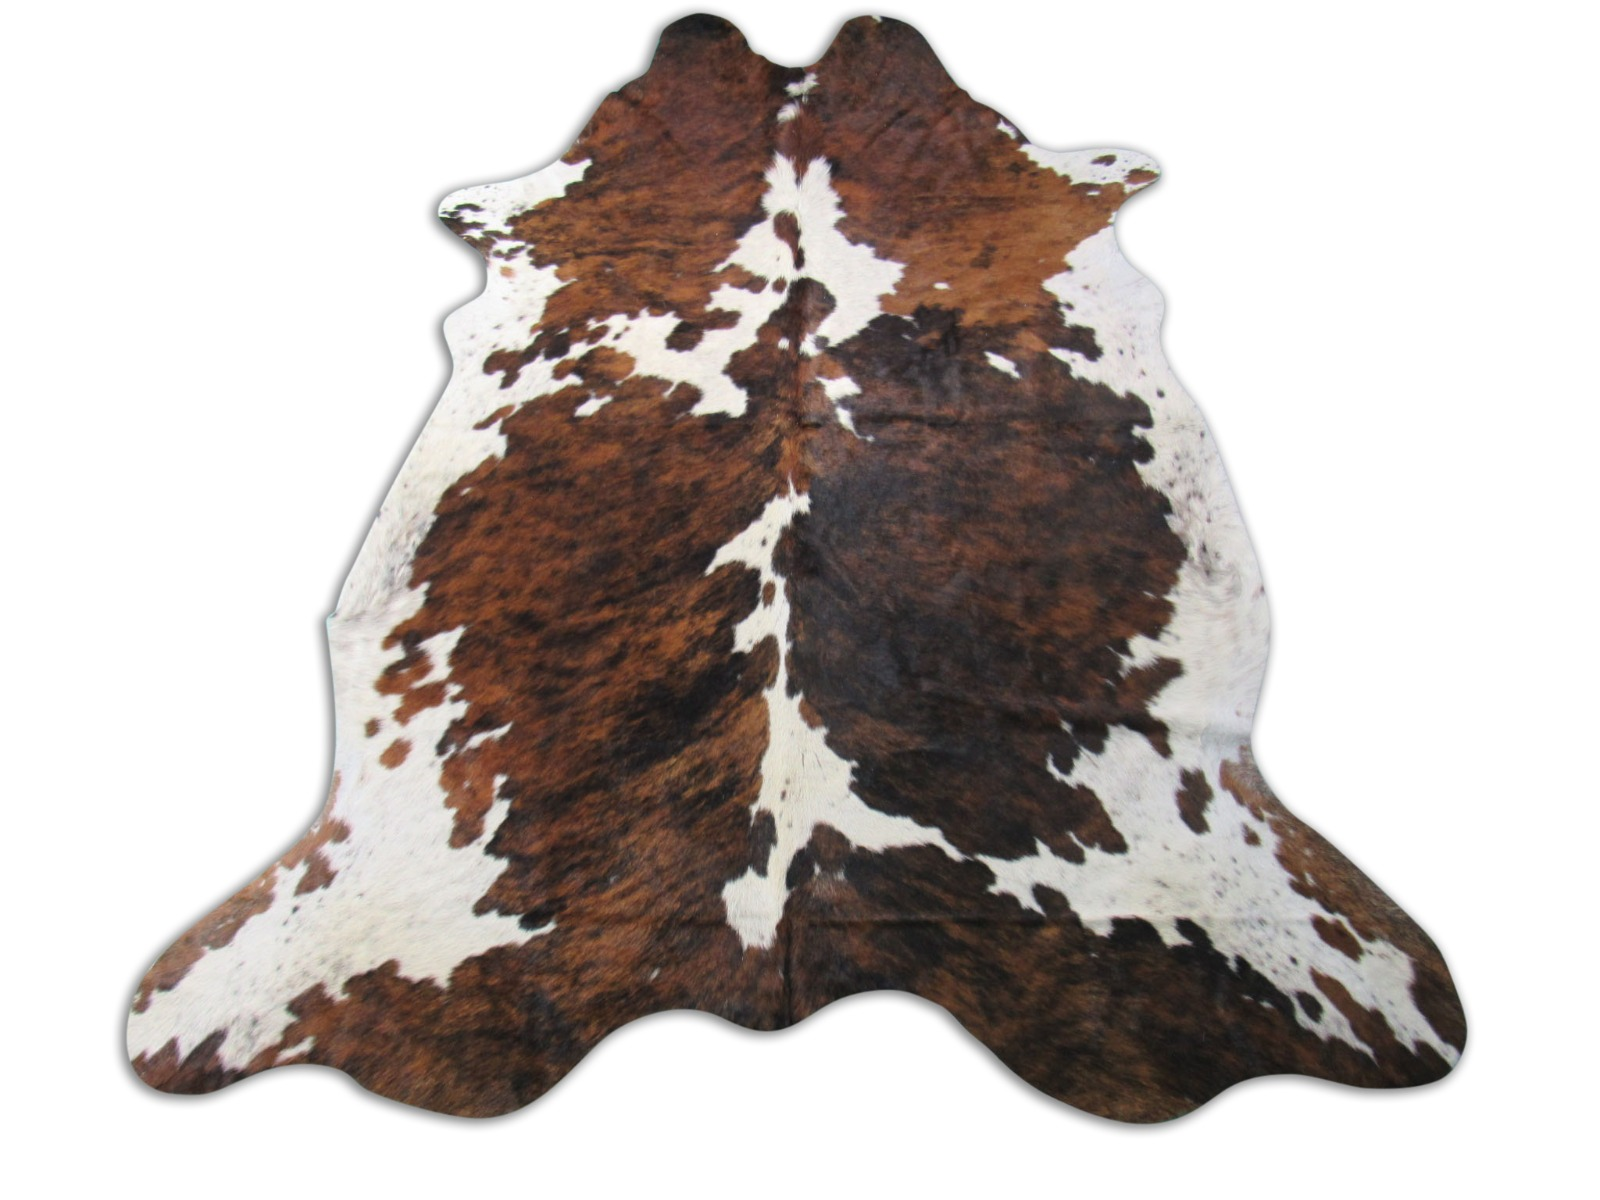 A-1302 Tricolor Speckled Cowhide Rug Size: 8 1/4' X 7'